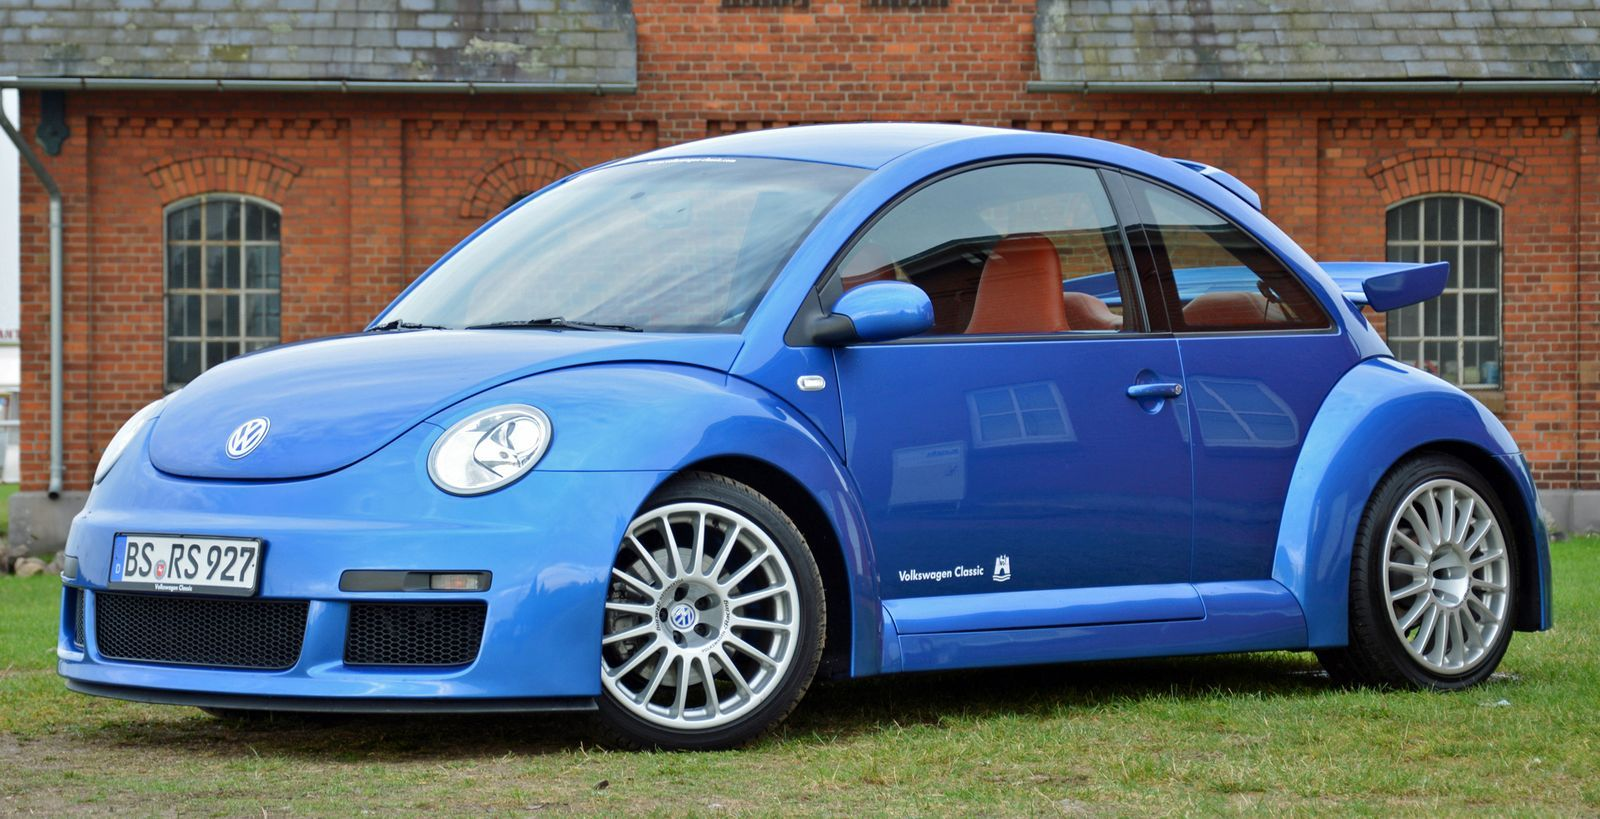 2001 volkswagen beetle rsi new beetle pinterest beetles volkswagen and vw. Black Bedroom Furniture Sets. Home Design Ideas